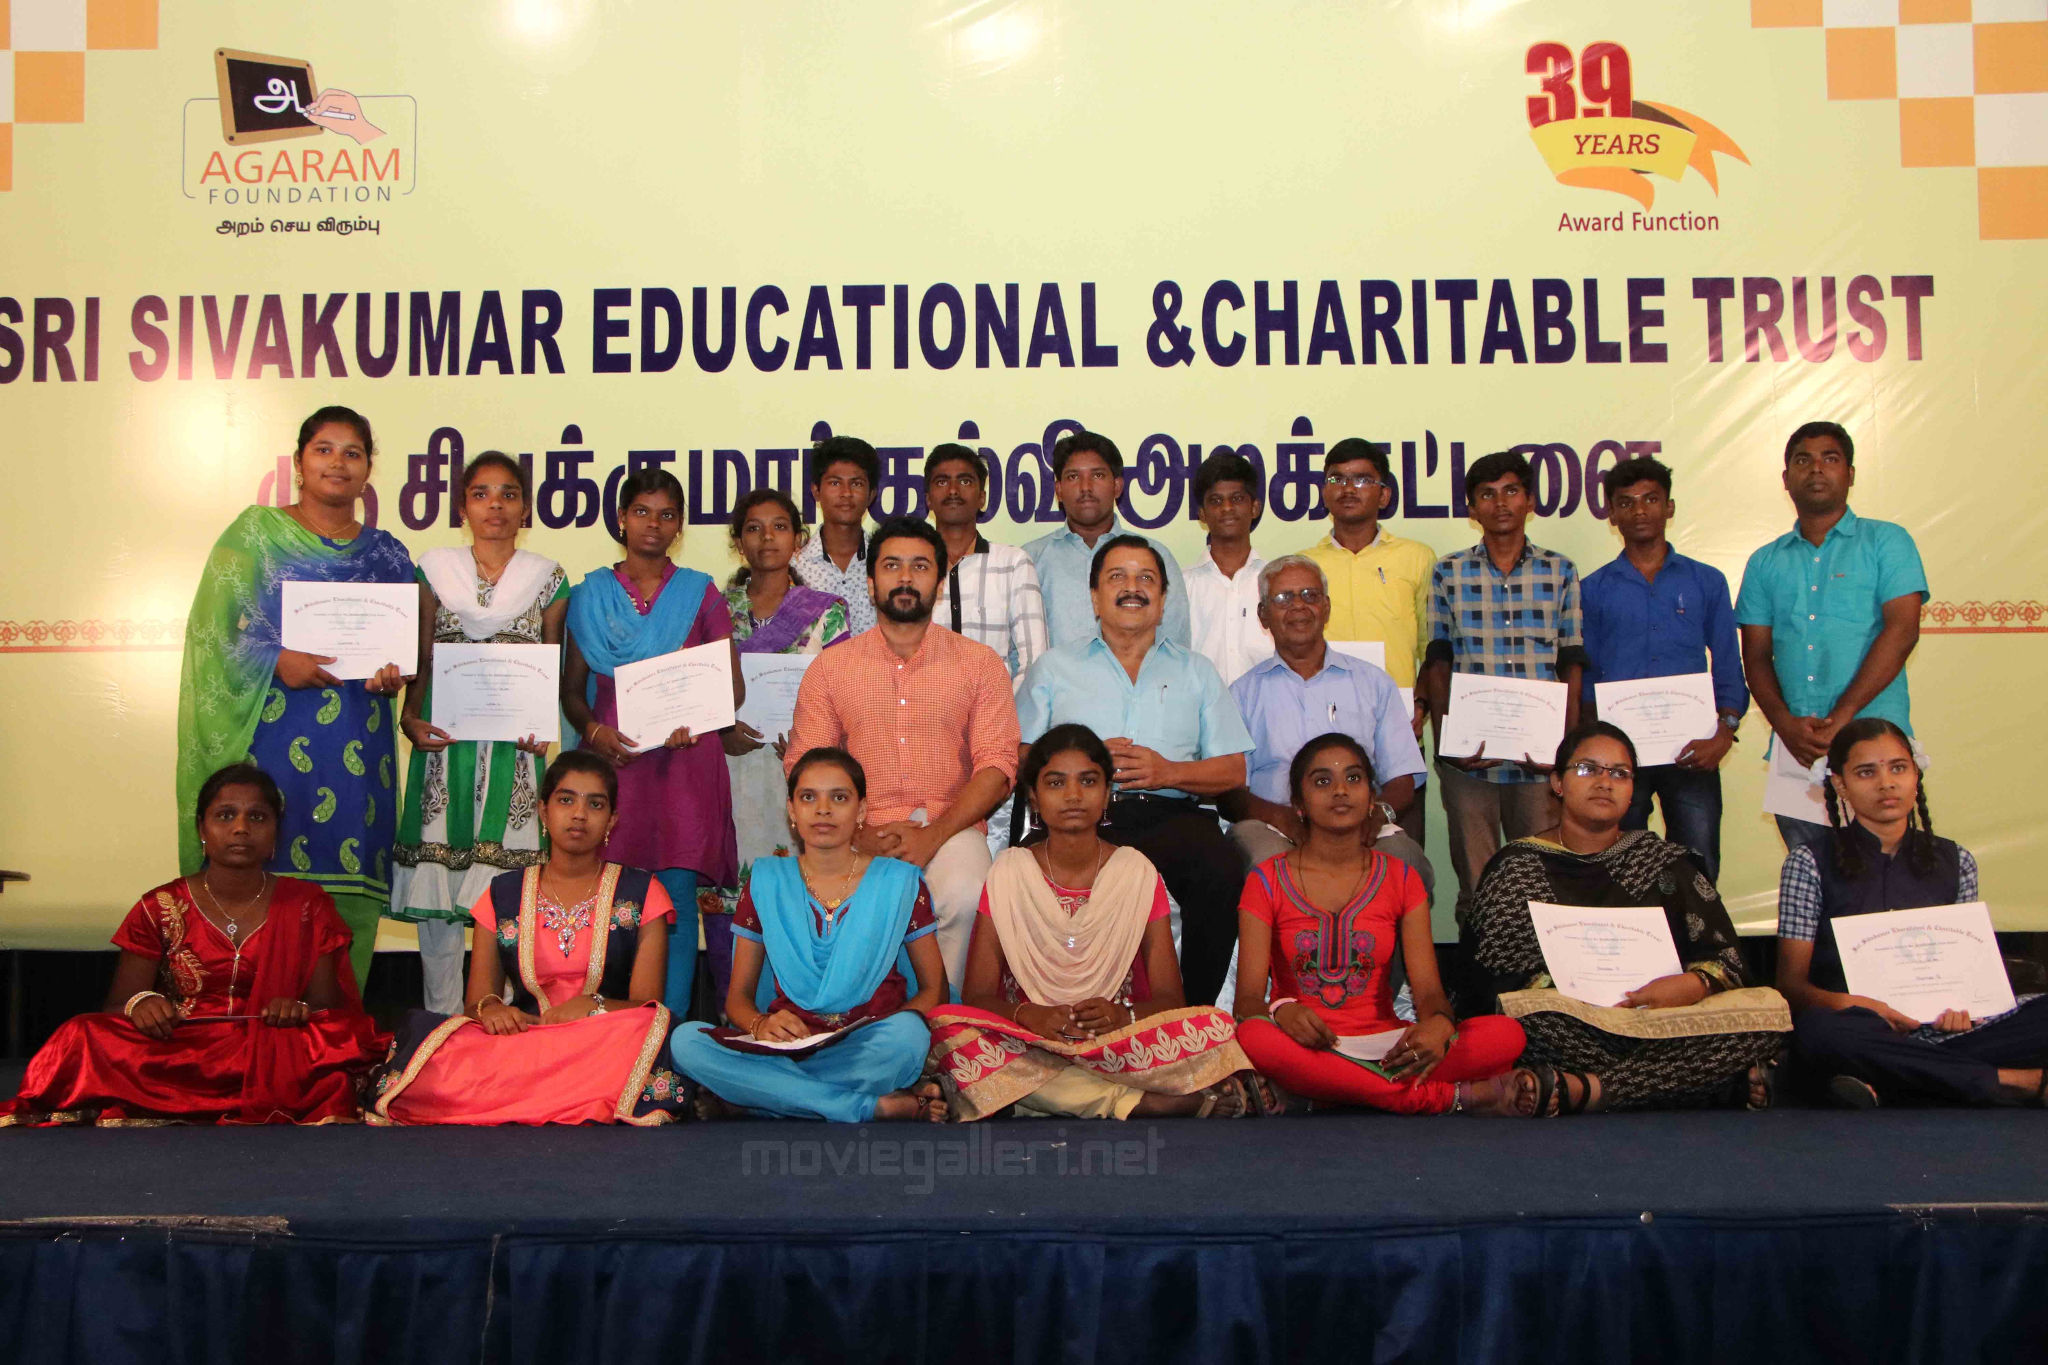 39th Sri Sivakumar Educational and Charitable Trust Awards Ceremony